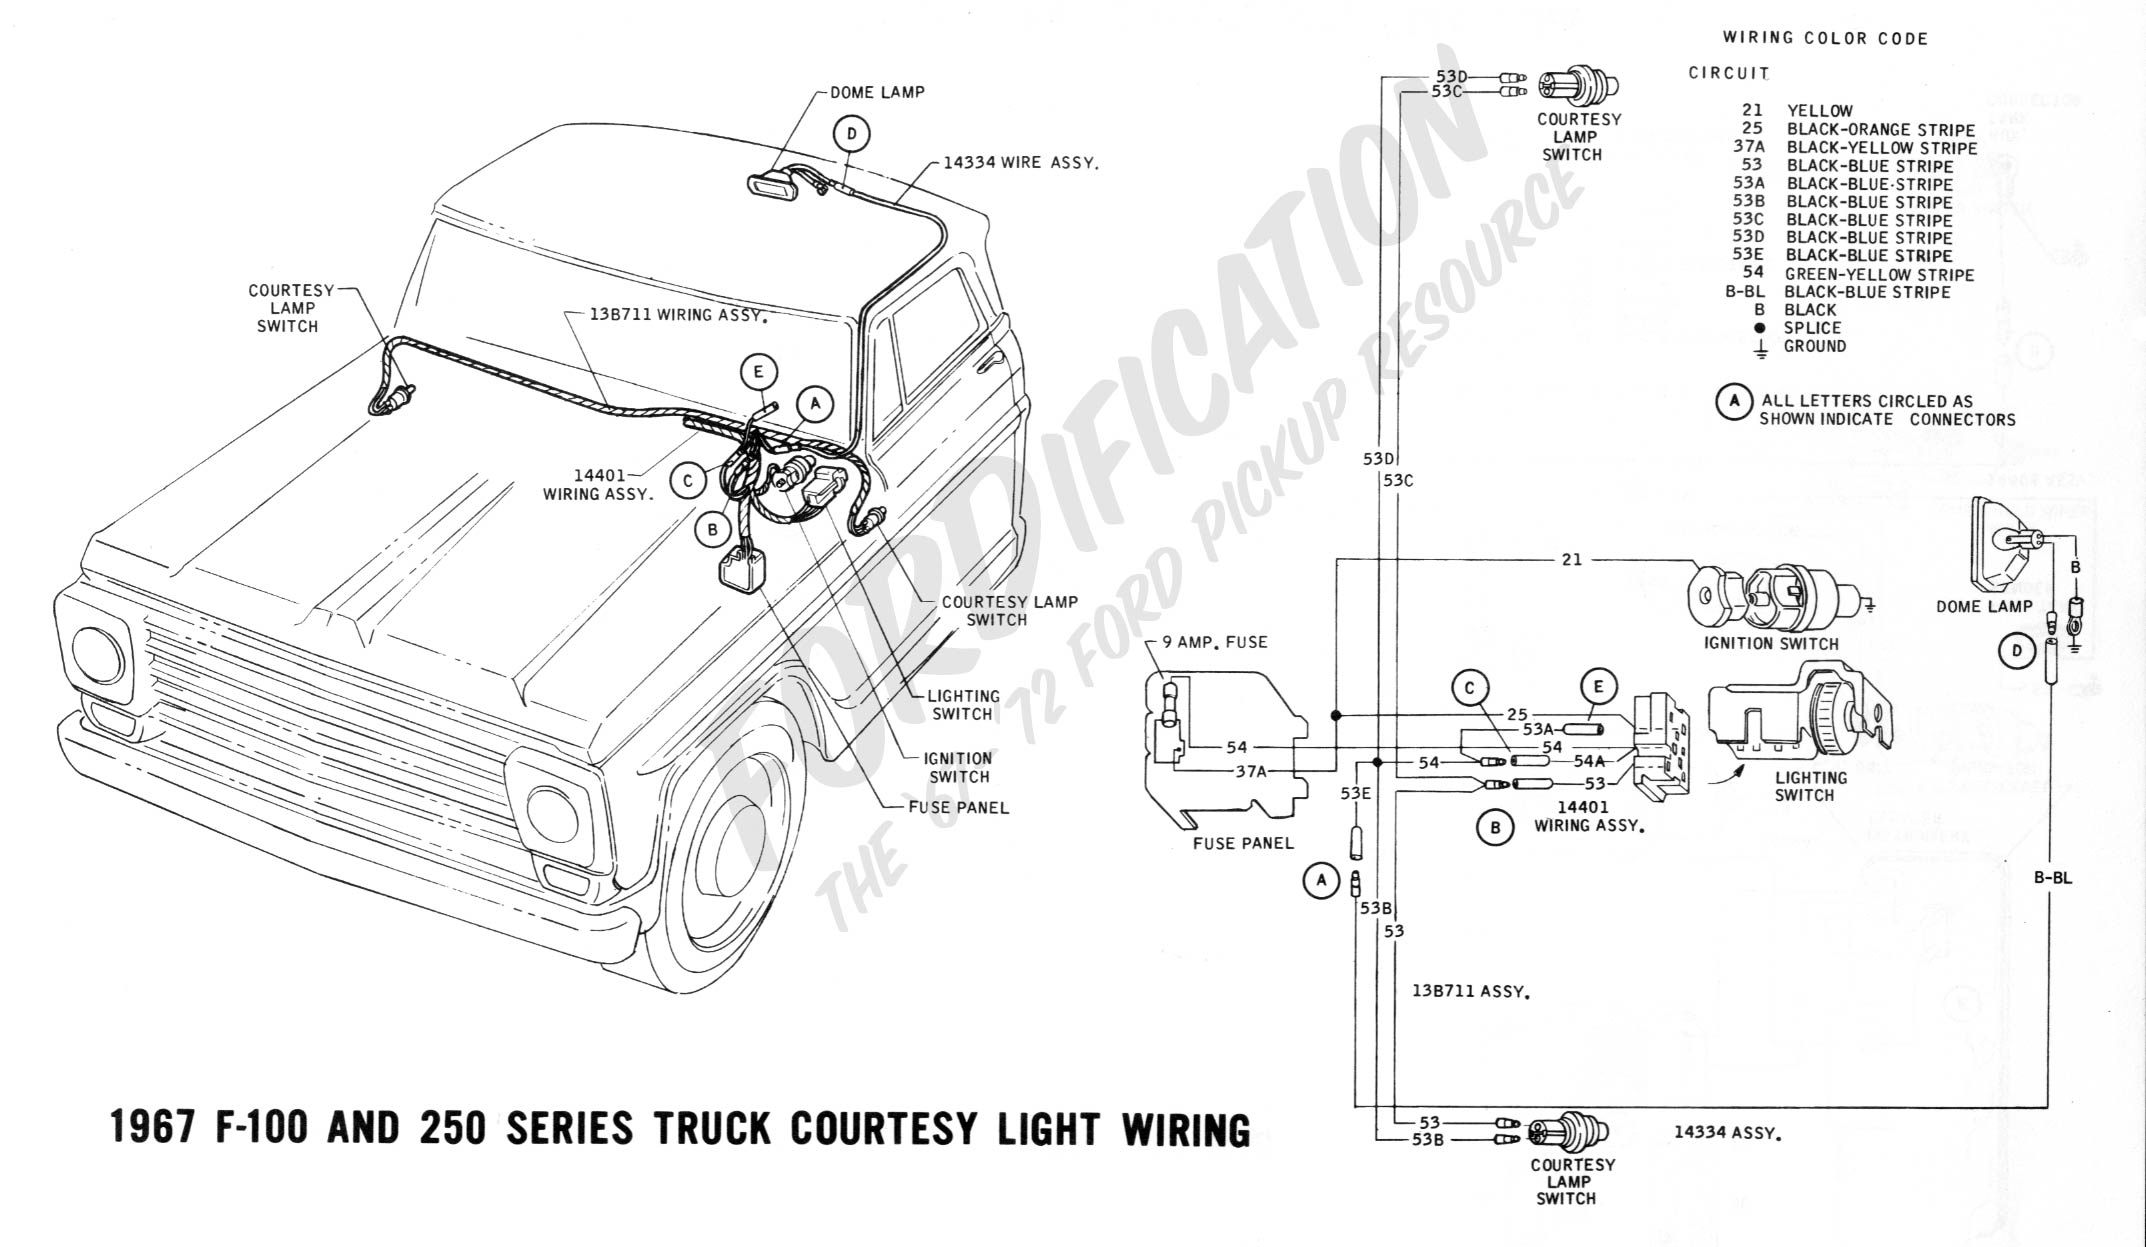 wiring 1967courtesylight ford truck technical drawings and schematics section h wiring 1964 ford wiring diagram at nearapp.co